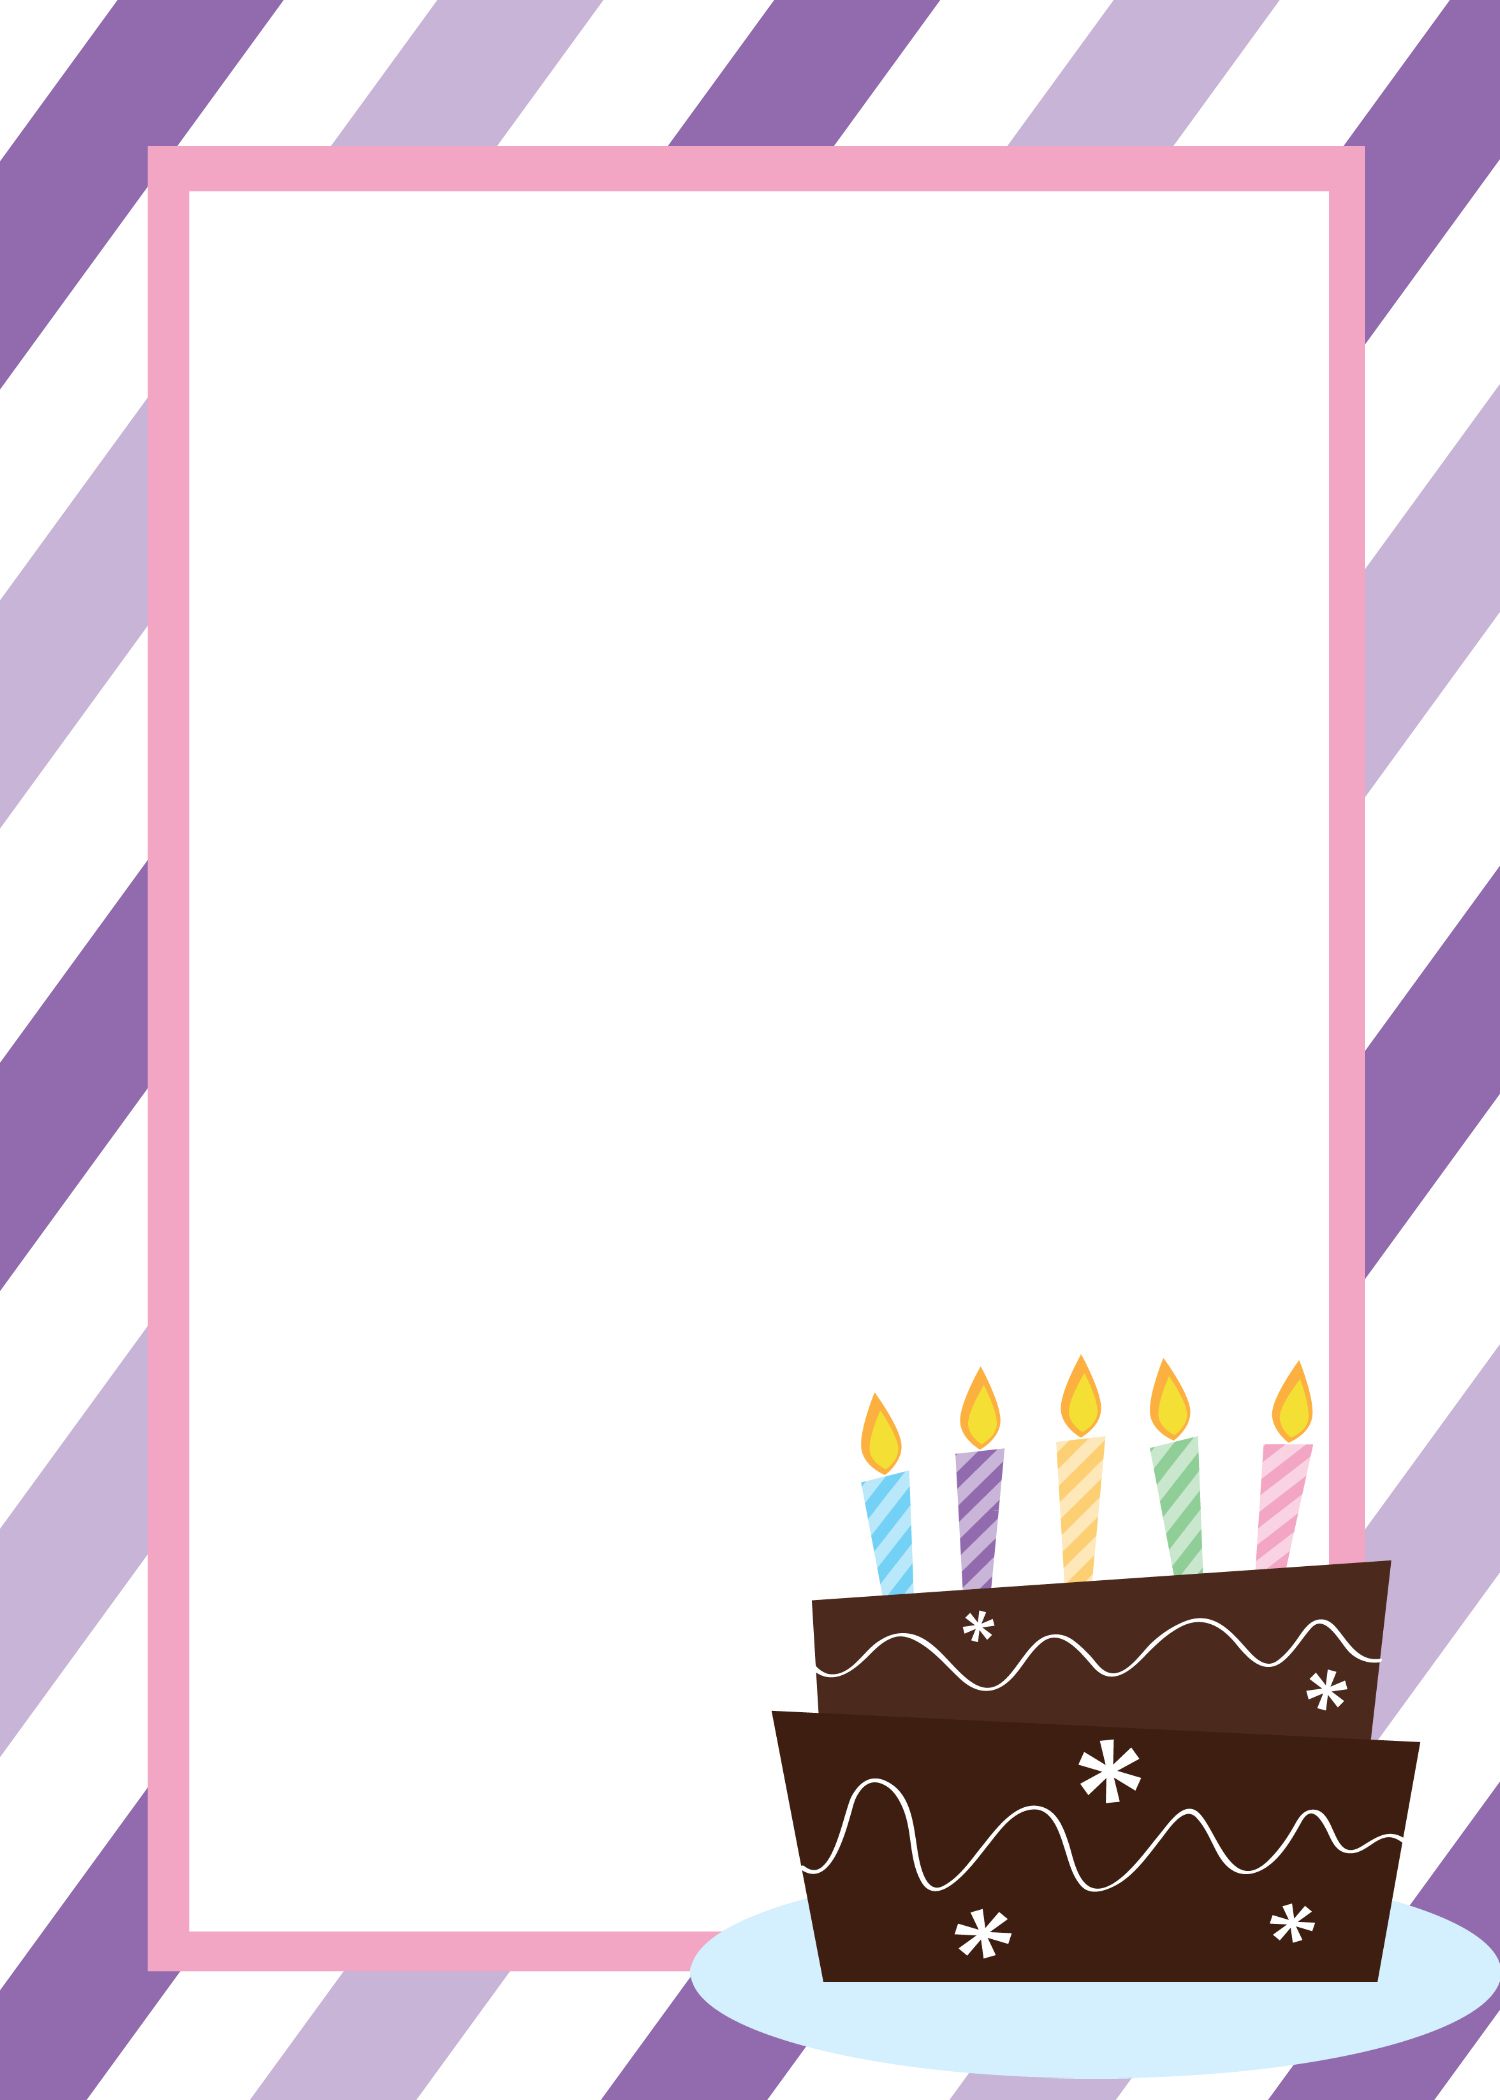 printable 21st birthday invitations template ; Blank-Birthday-Invitation-Templates-and-get-inspired-to-create-your-own-birthday-Invitation-design-with-this-ideas-1